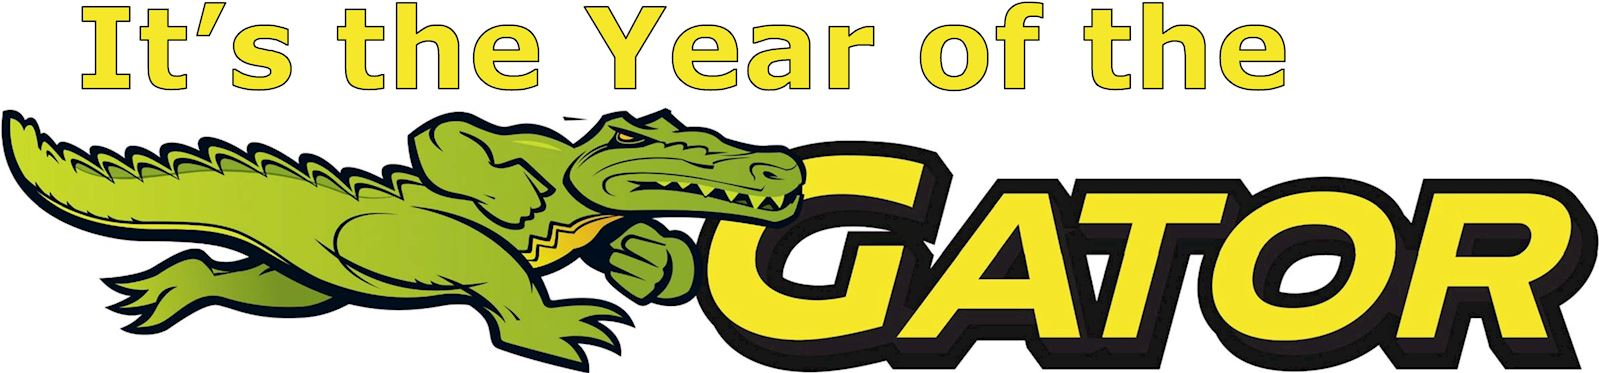 It's the year of the Gator!